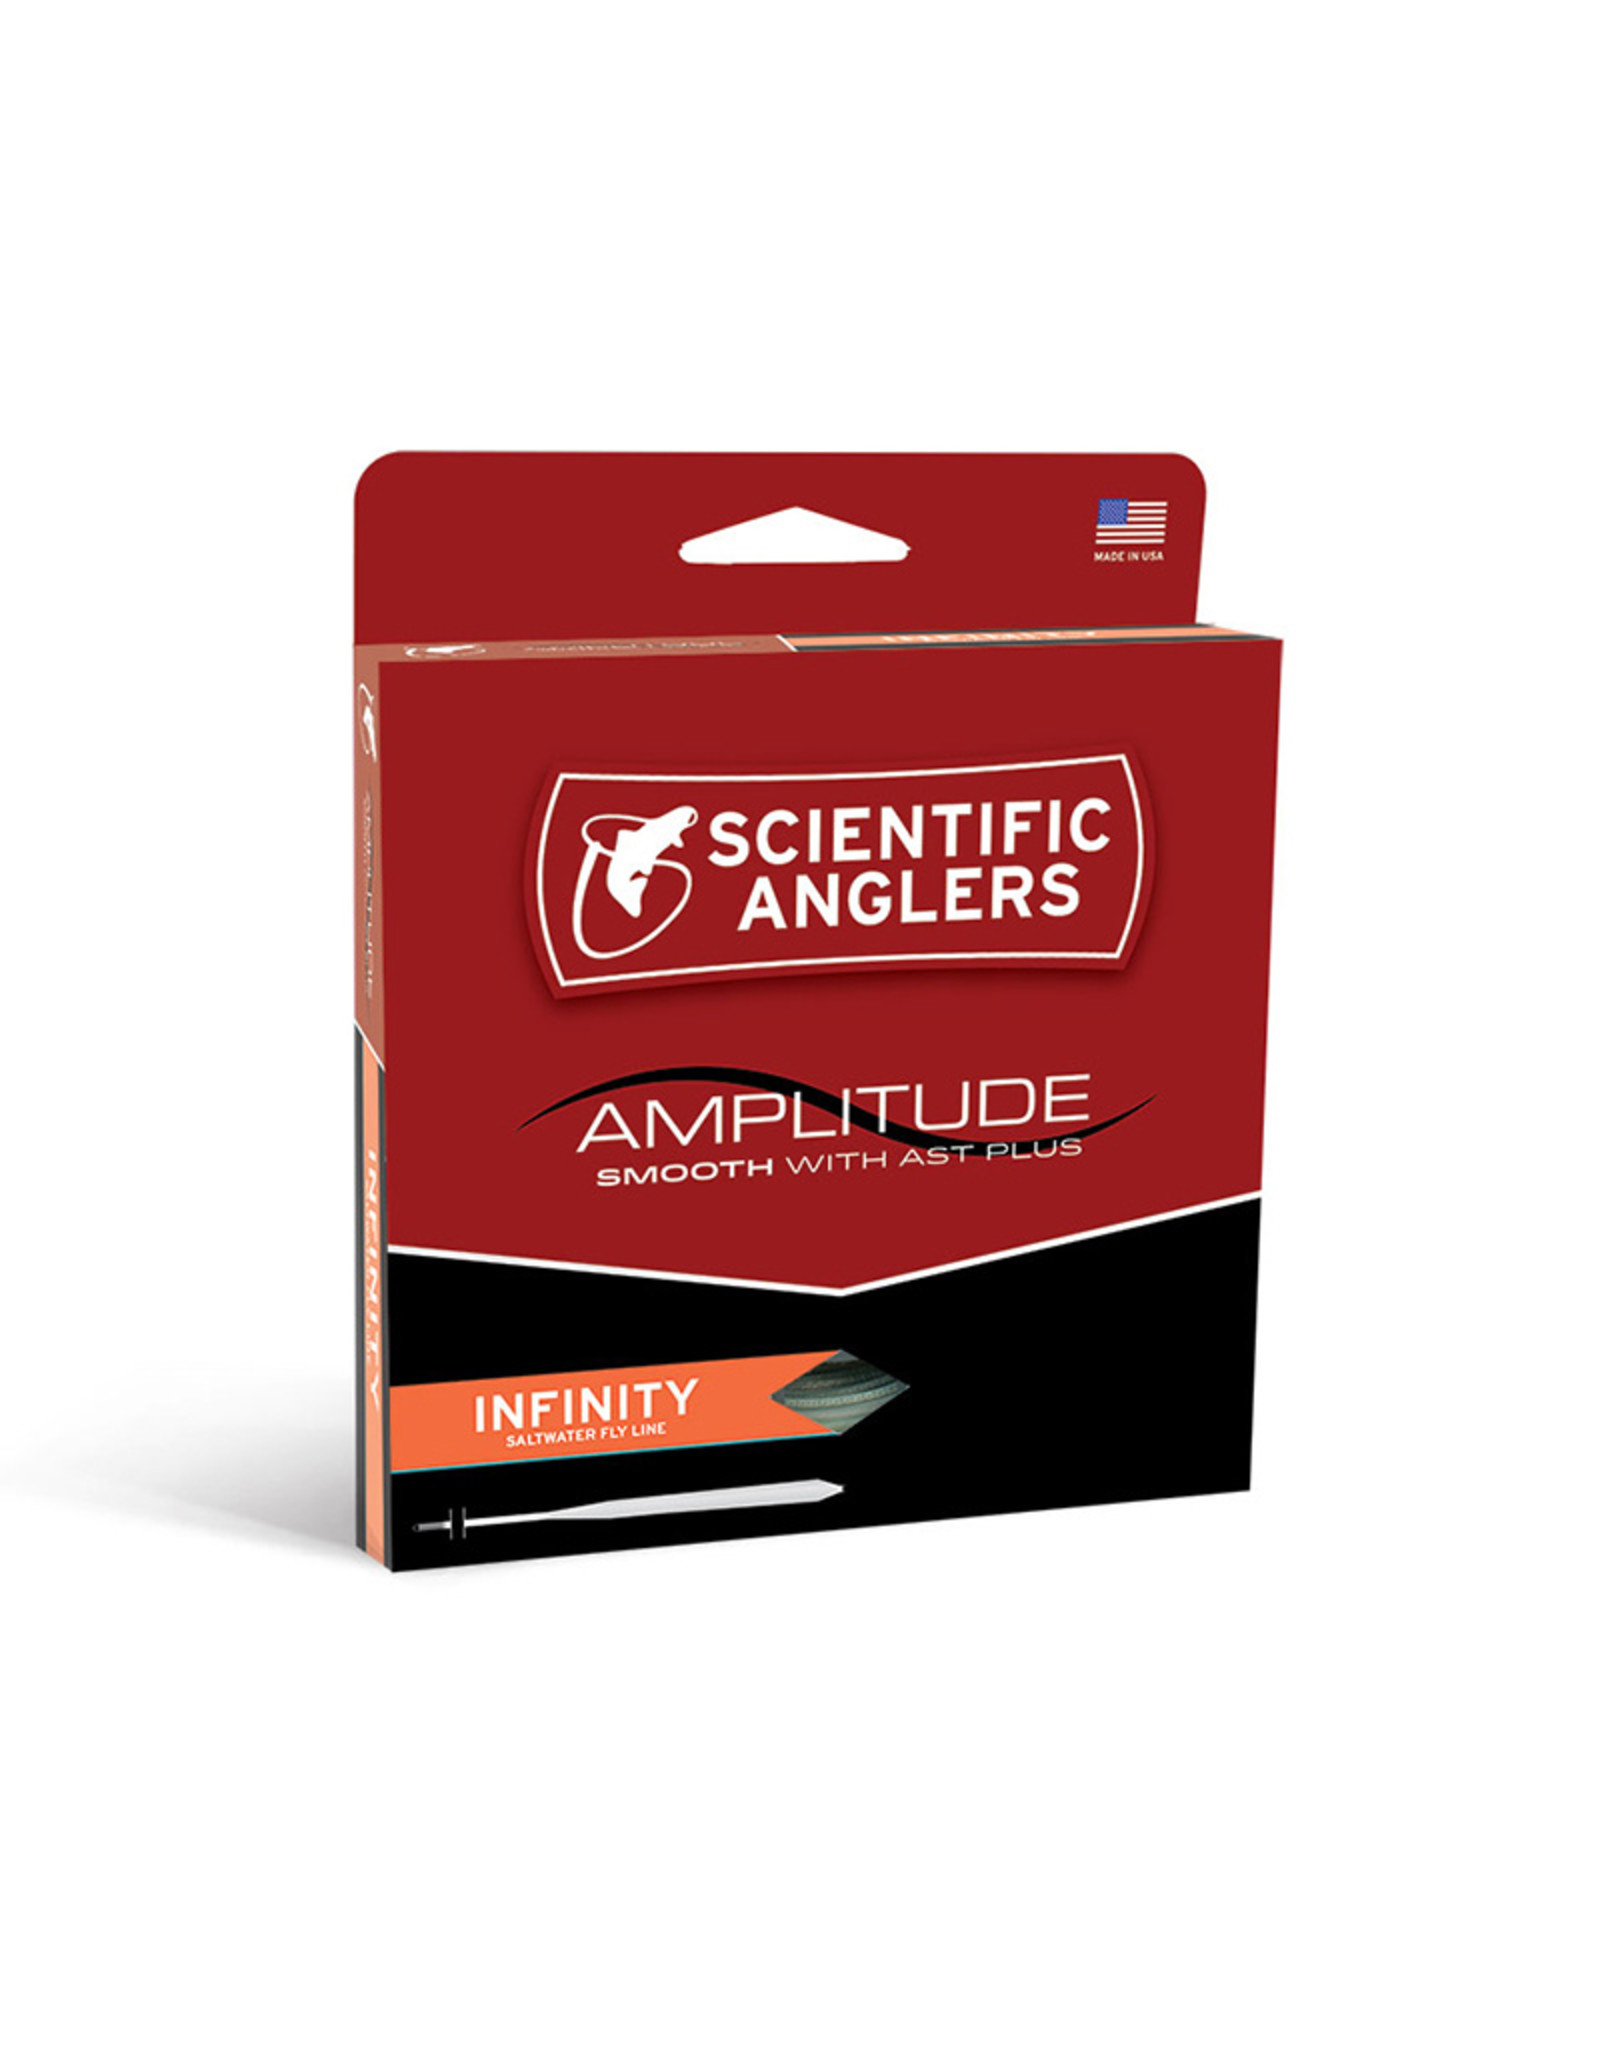 Scientific Anglers Amplitude Smooth: Infinity Salt